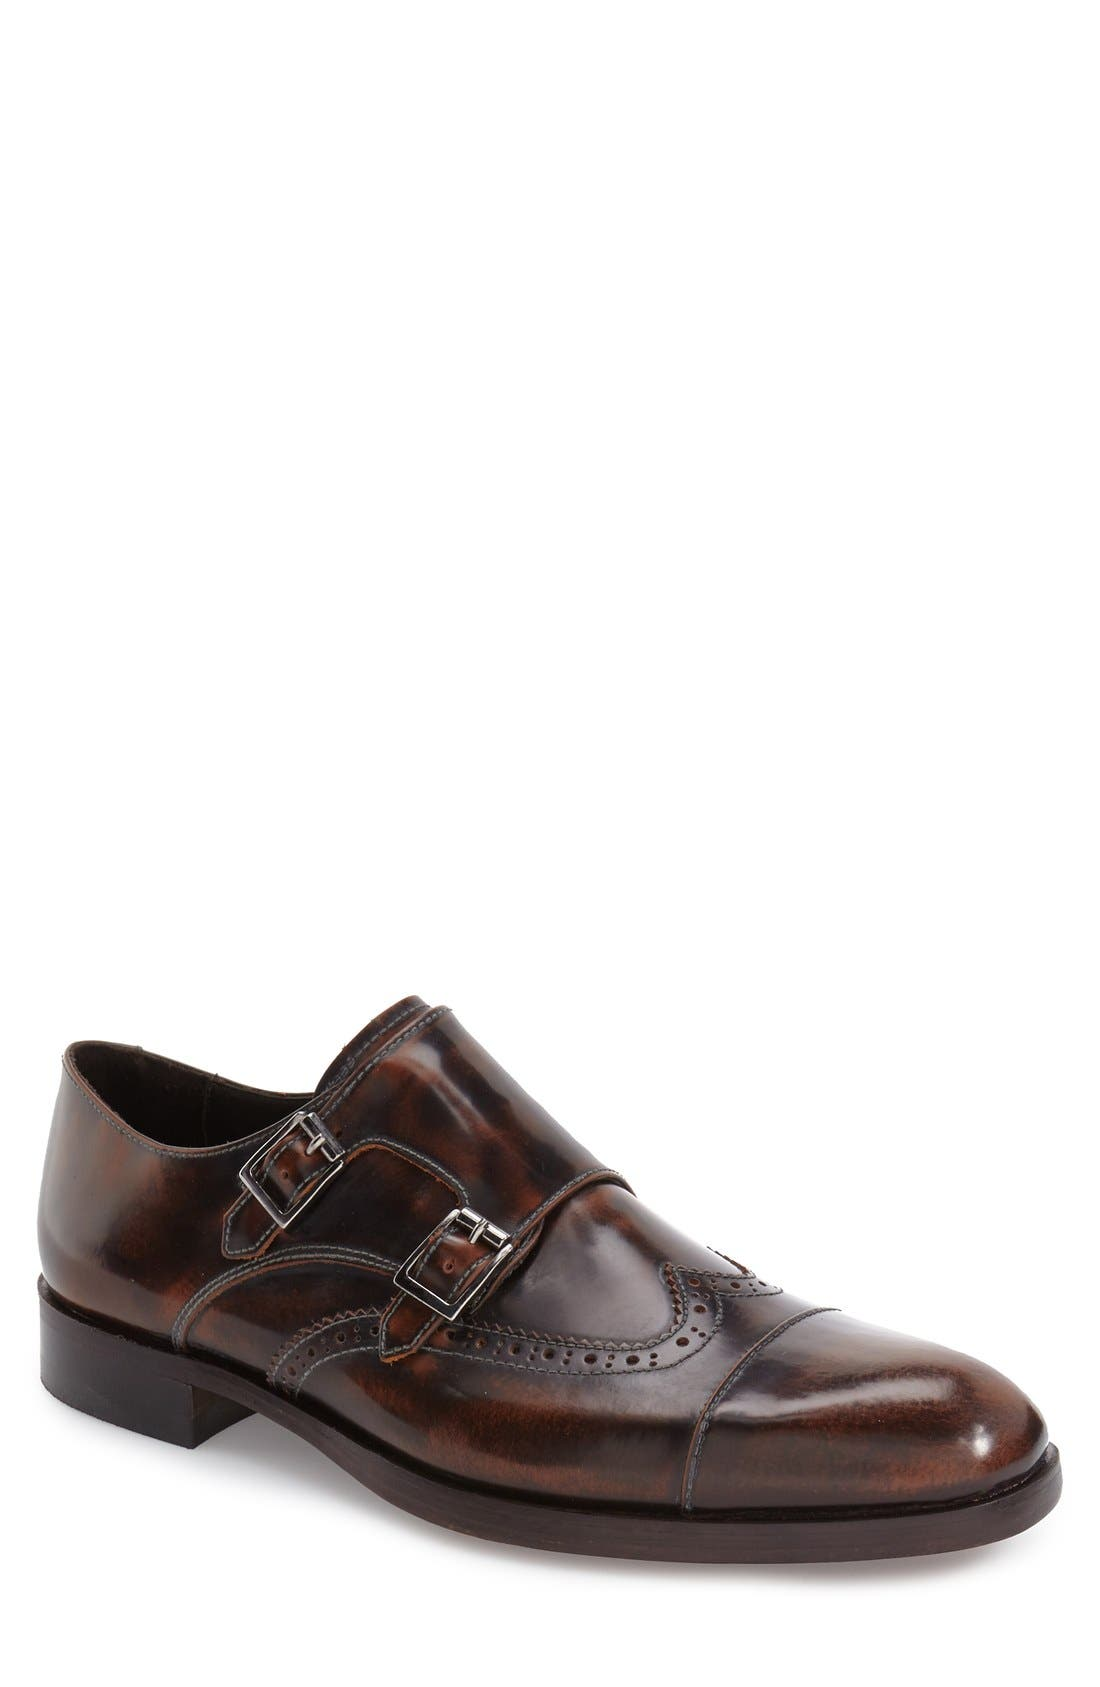 Main Image - Donald J Pliner 'Ziggy' Double Monk Strap Shoe (Men)